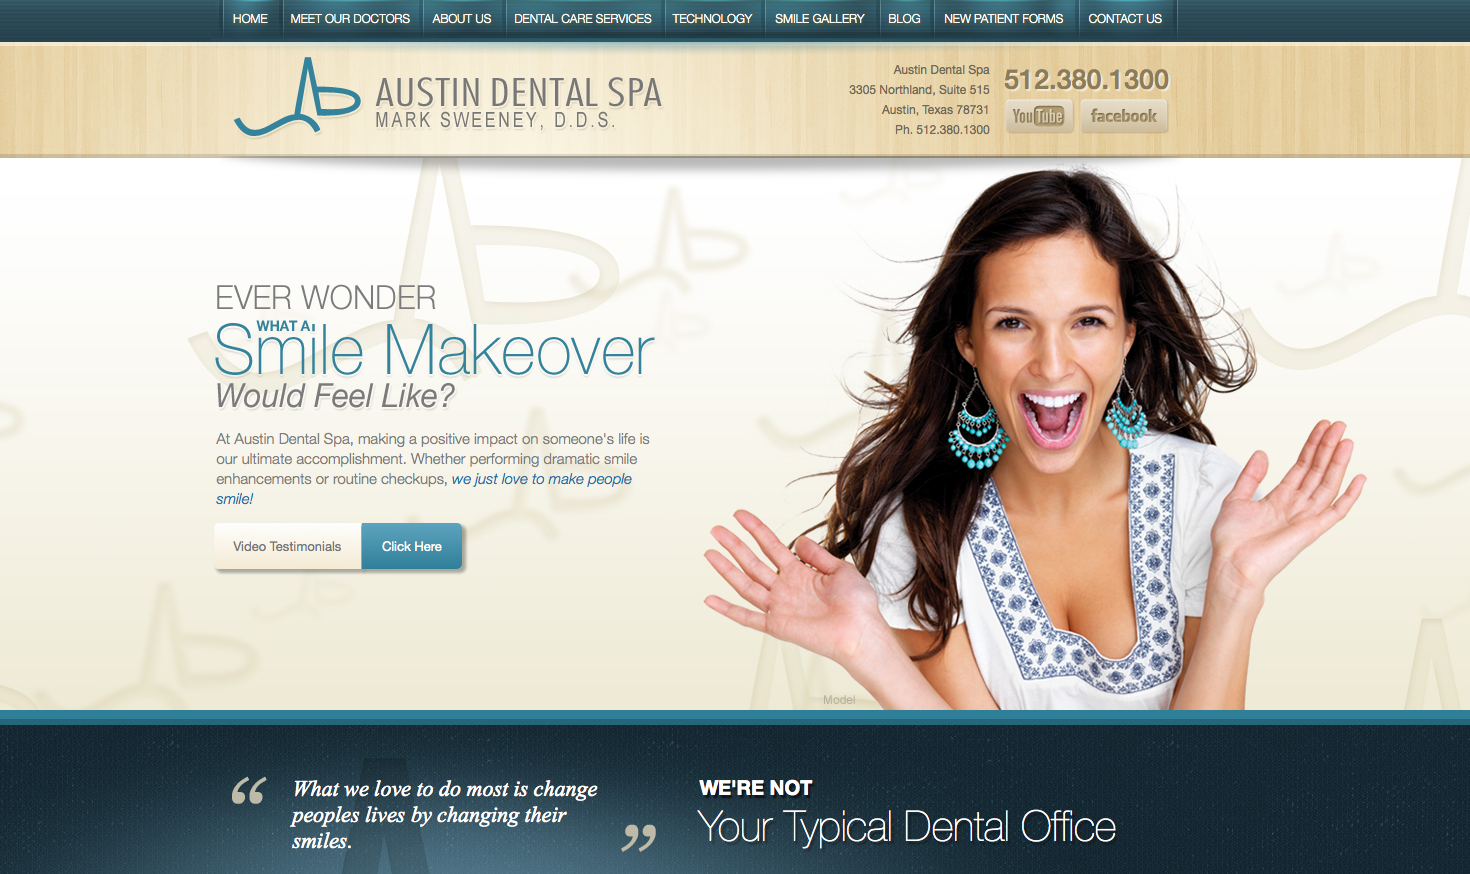 Cosmetic Dentistry Practice in Austin Launches New Website to ...